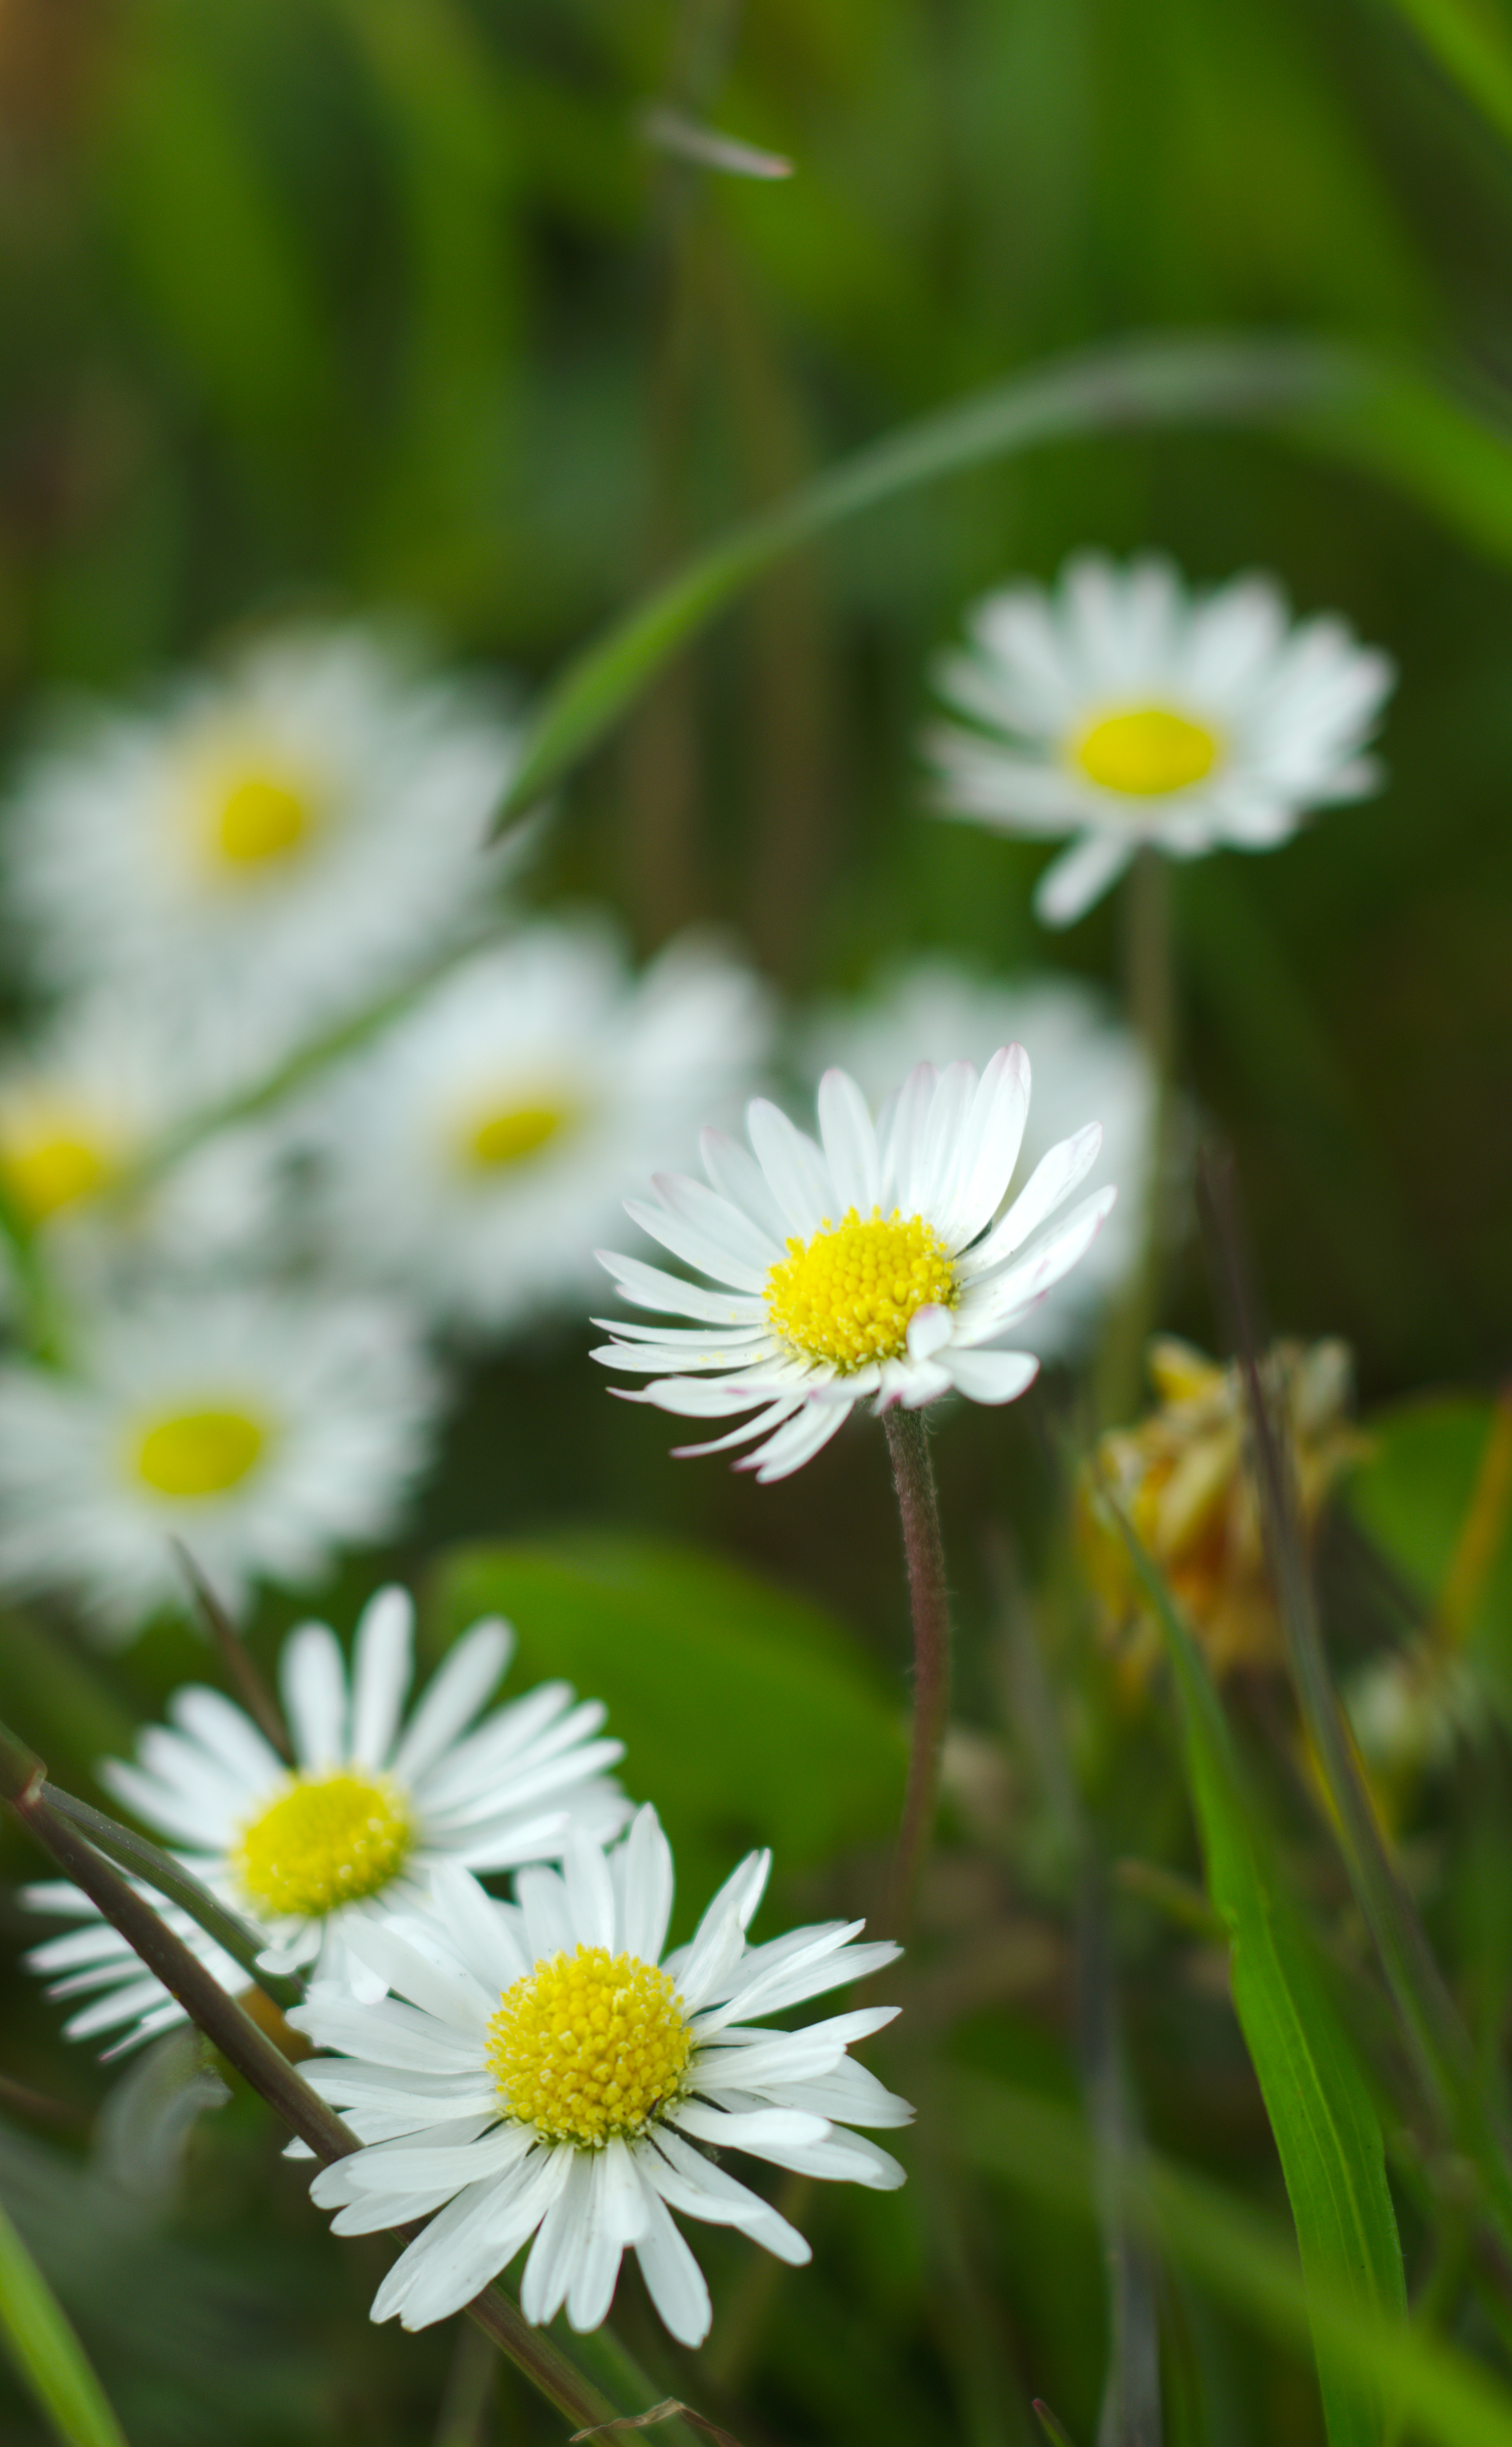 73646 download wallpaper Flowers, Chamomile, Camomile, Wildflowers, Petals, Grass screensavers and pictures for free